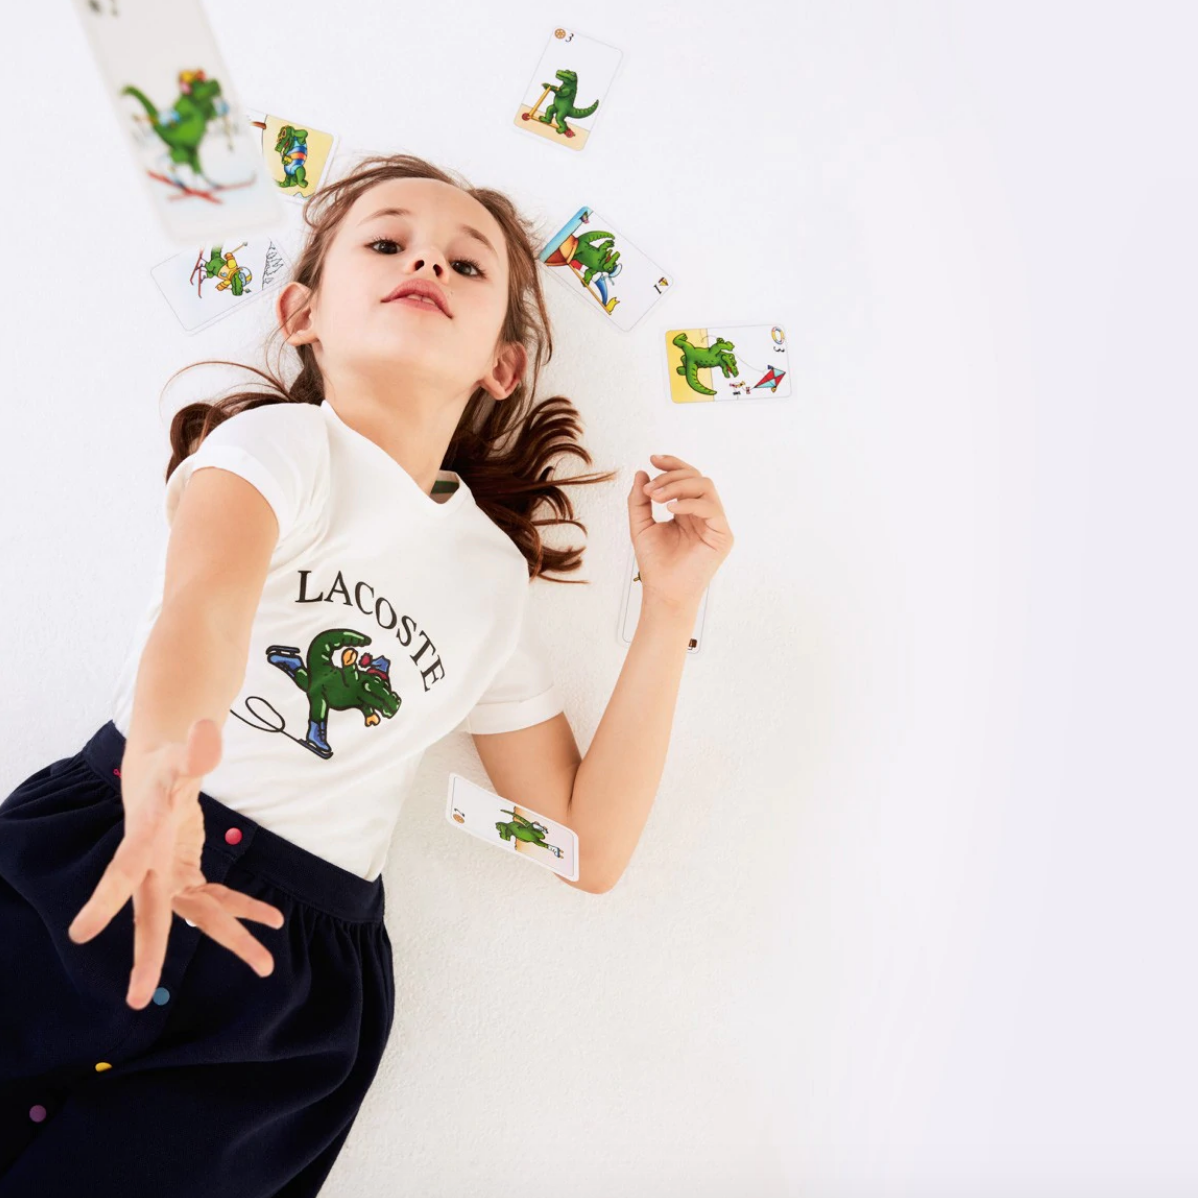 Lacoste Canada: Up to 55% OFF on Kids T-Shirts & Tops